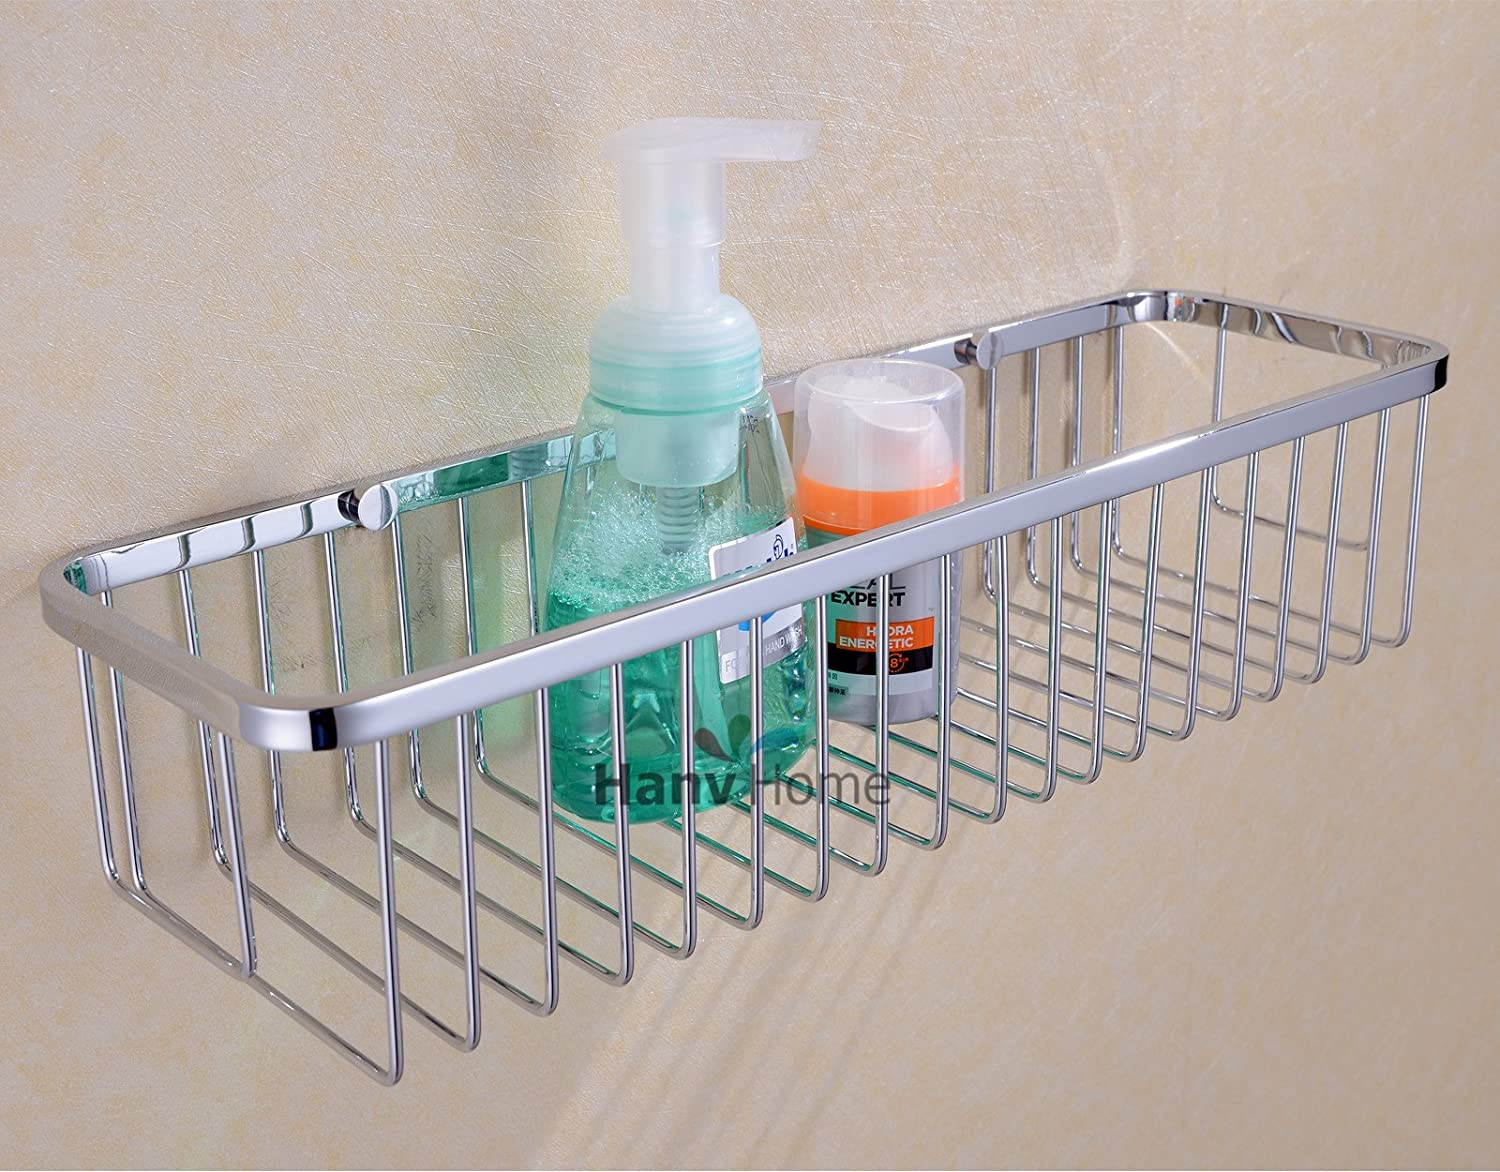 Amazon.com: Rectangular Shower Caddy - Stainless Steel Wall Mount ...